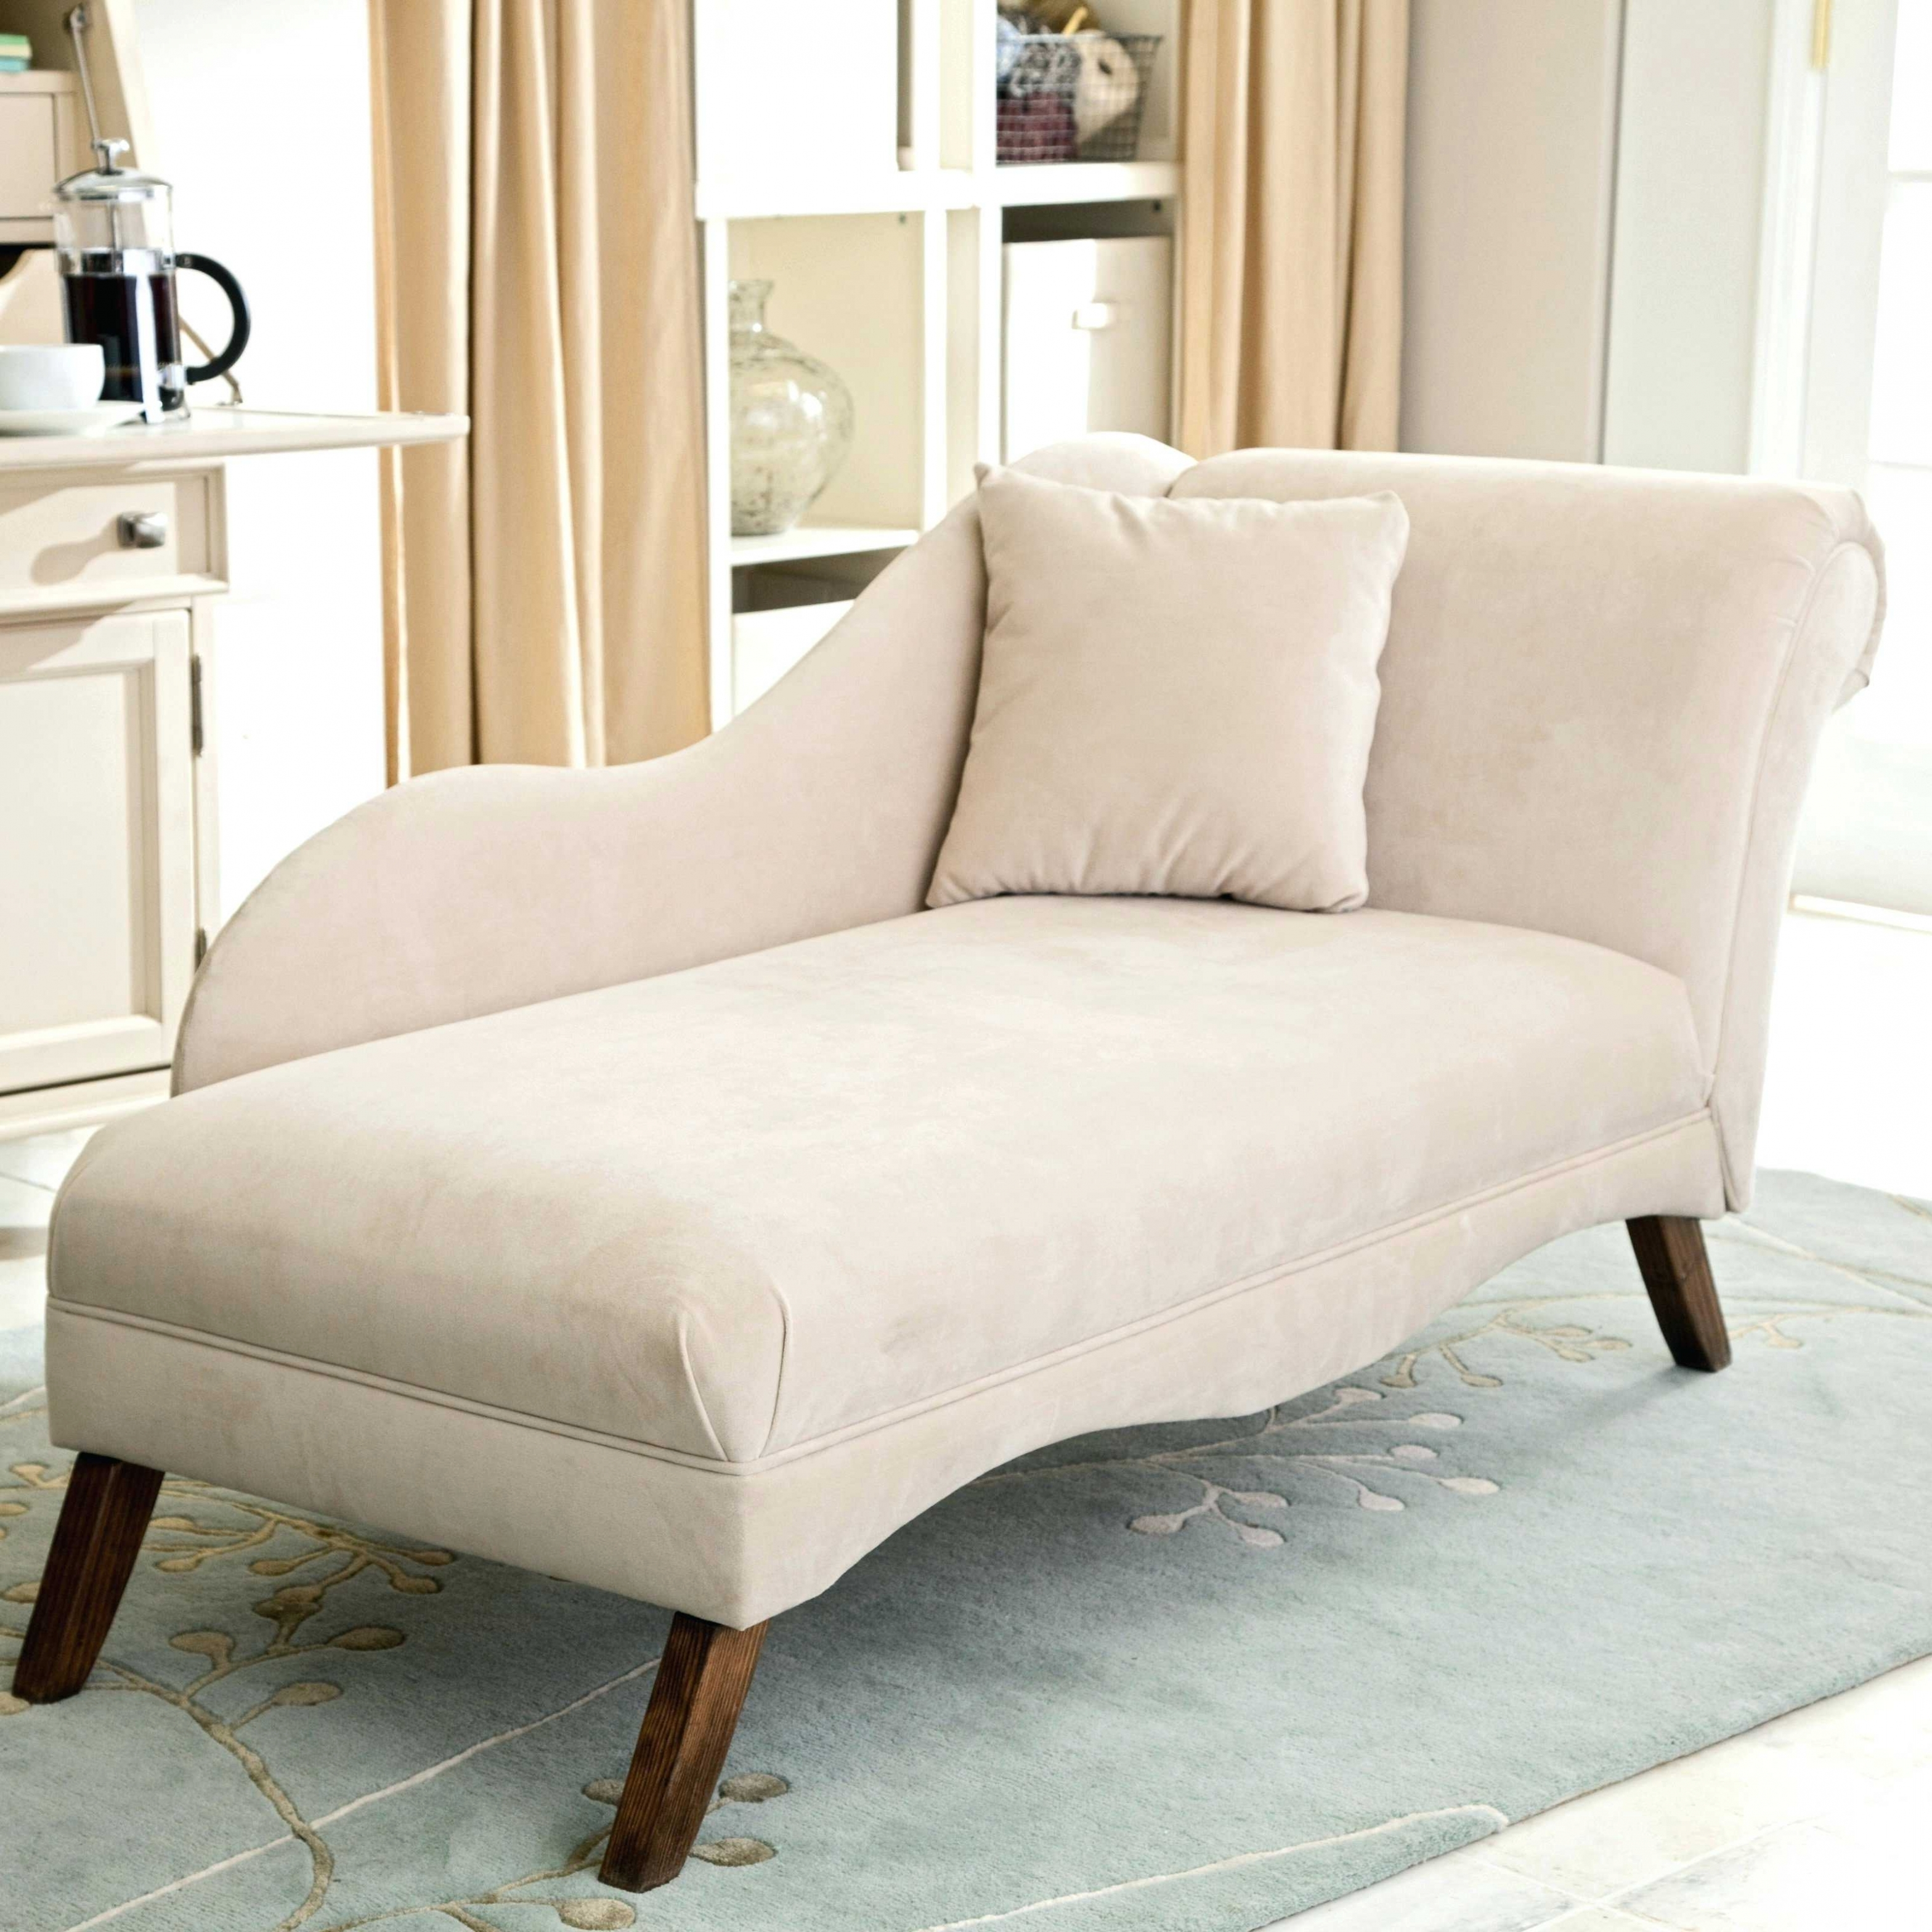 Fashionable Home Decor: Small Chaise Lounge Chairs For Bedroom French Style With Narrow Chaise Lounge Chairs (View 3 of 15)